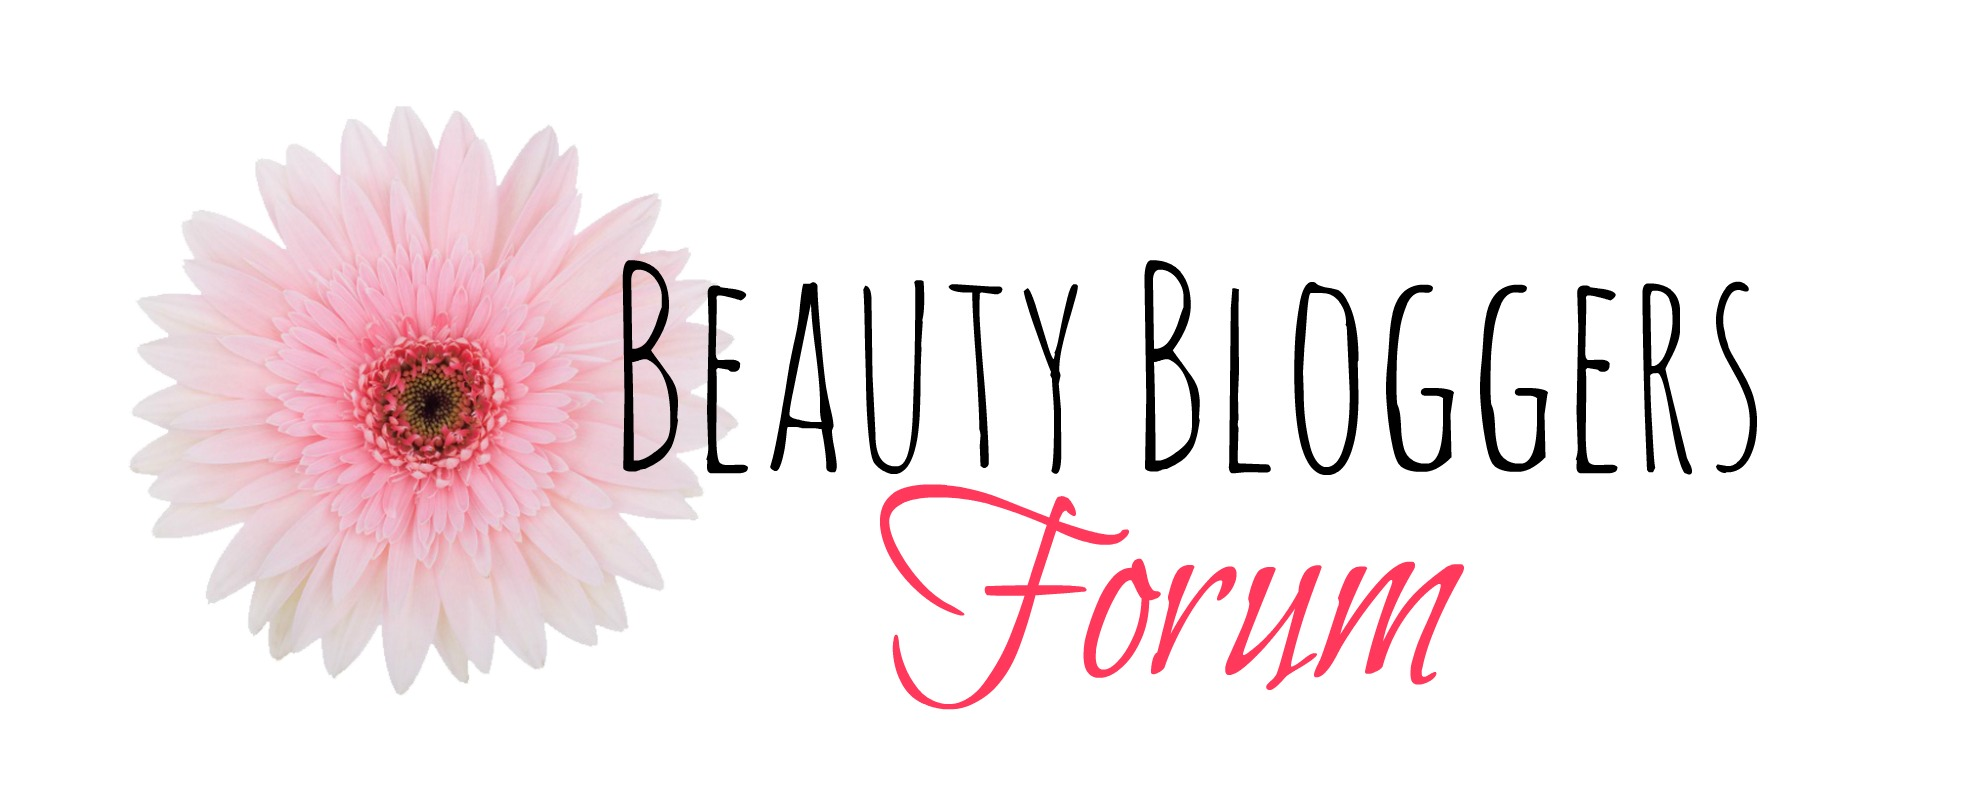 Beauty Bloggers Forum on Facebook. Promote your Blog! graphic